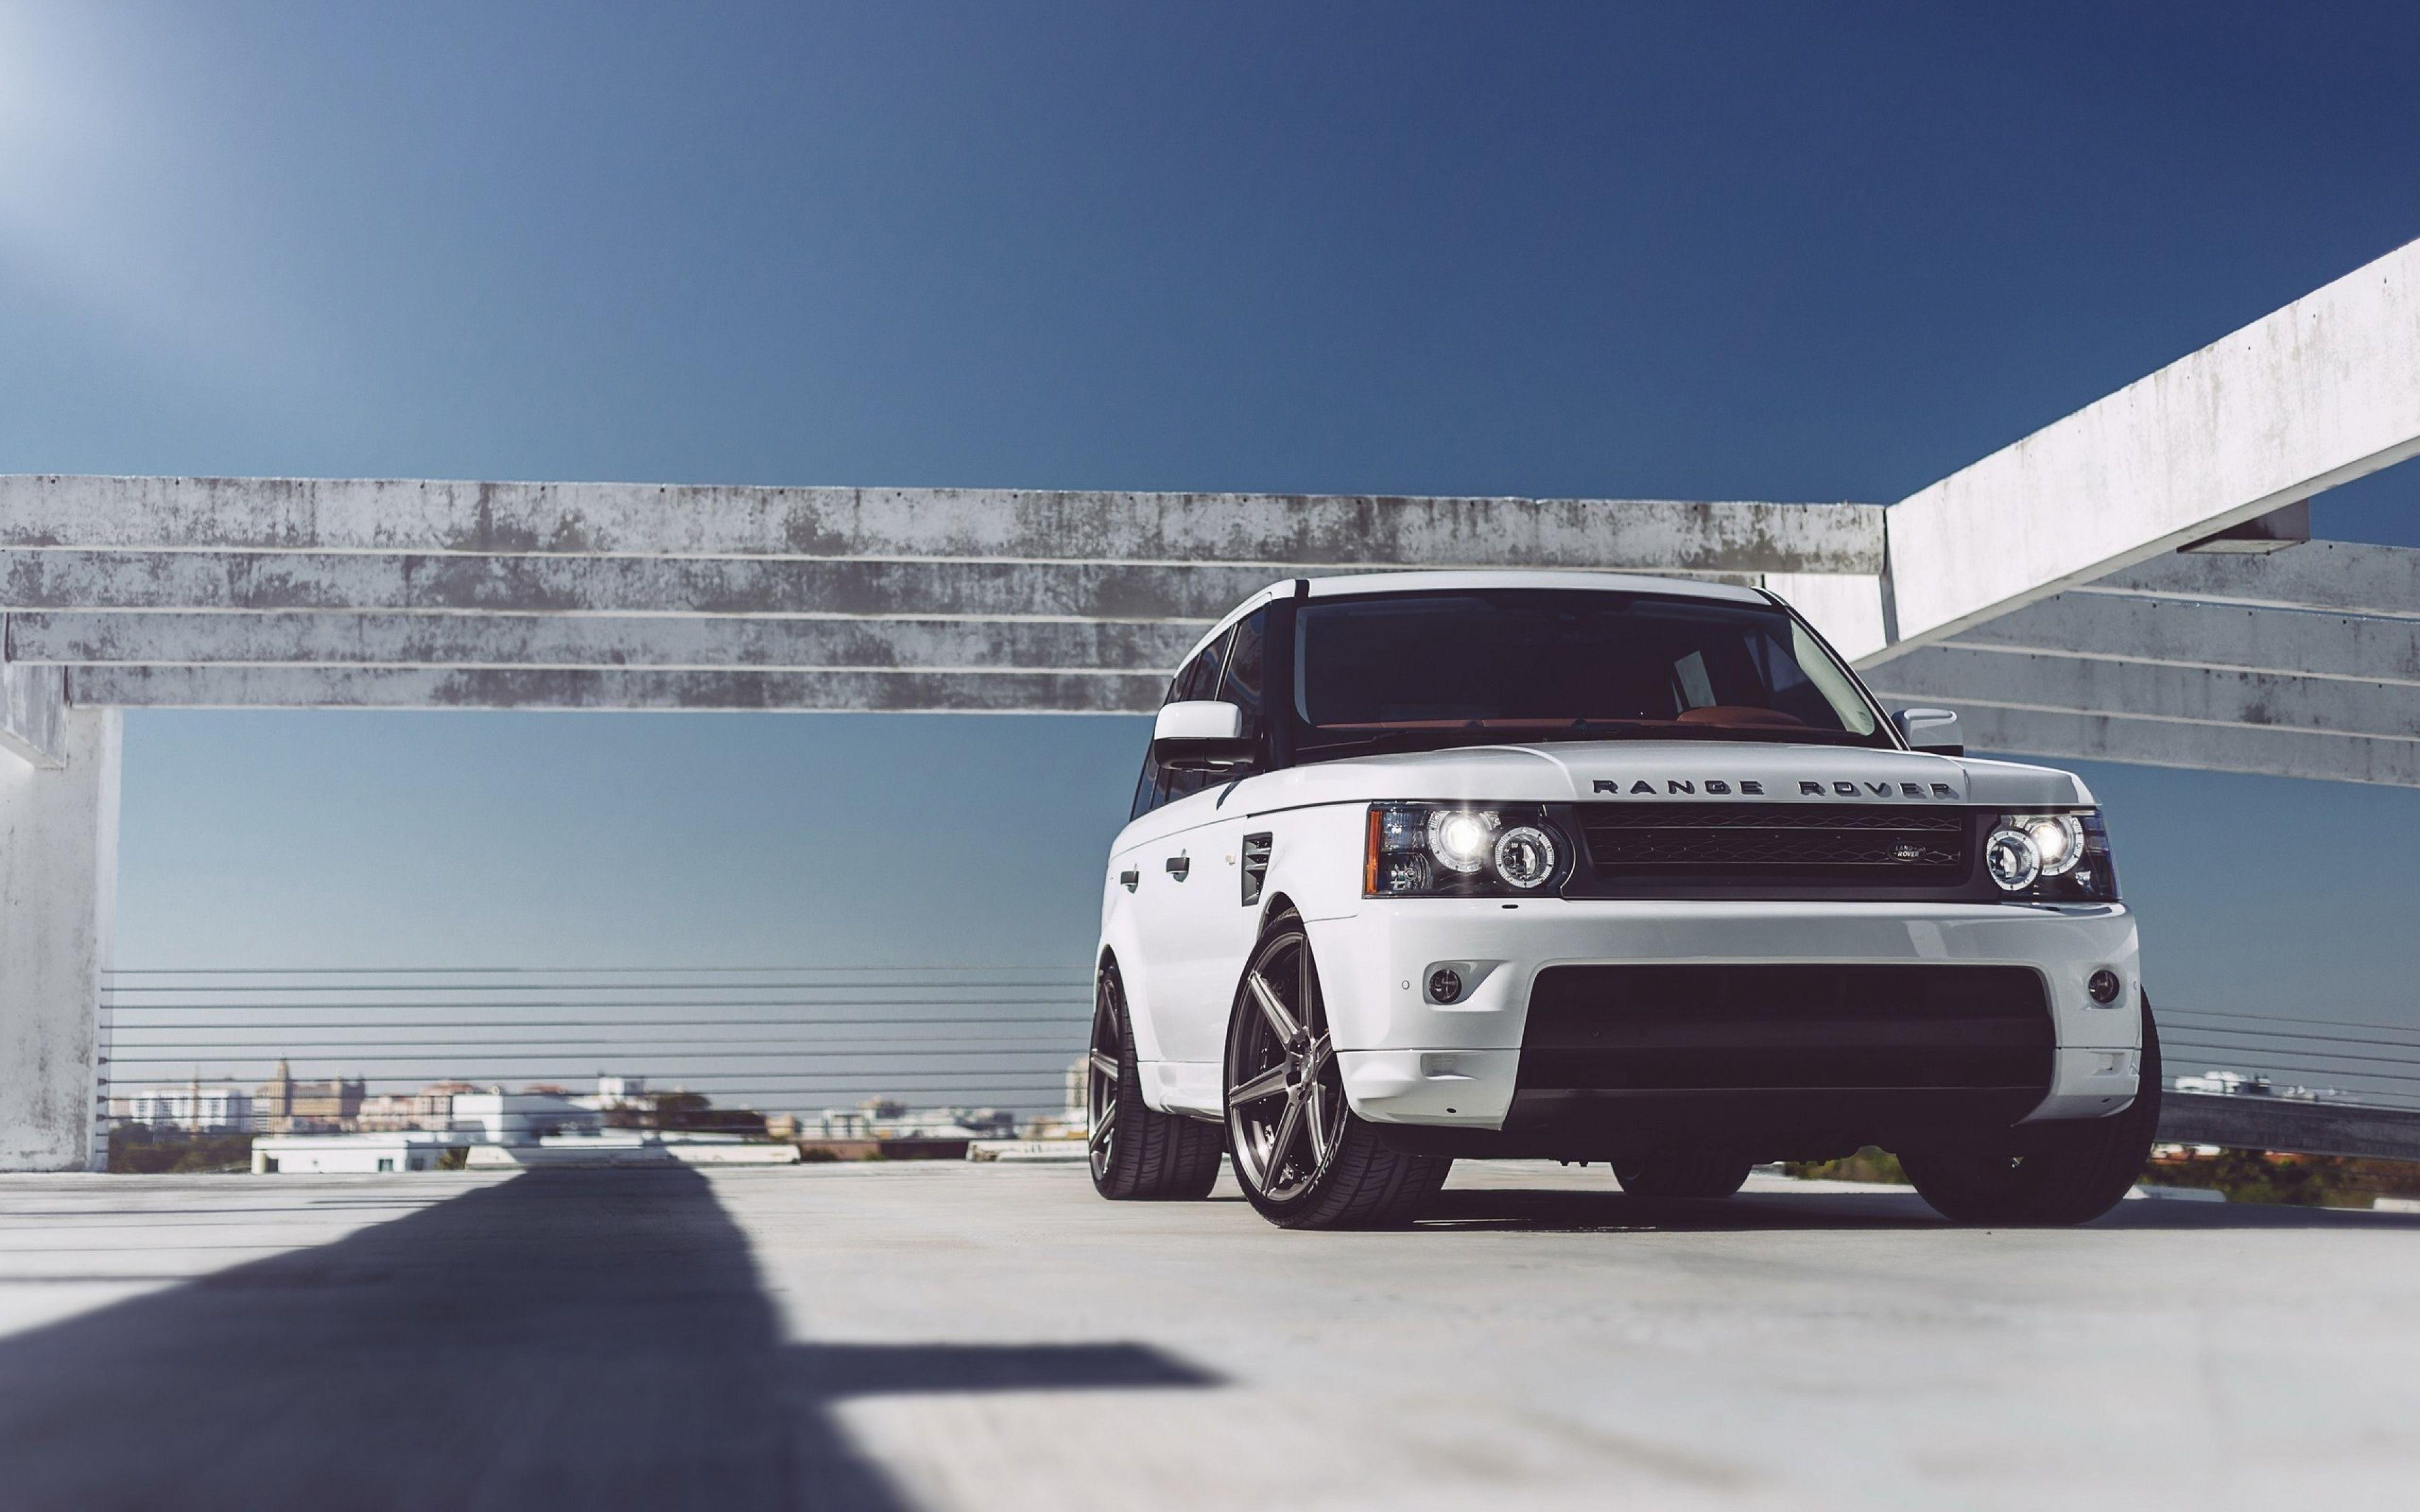 Land Rover Wallpapers Pack 464: Land Rover Wallpapers, 45 Land ...